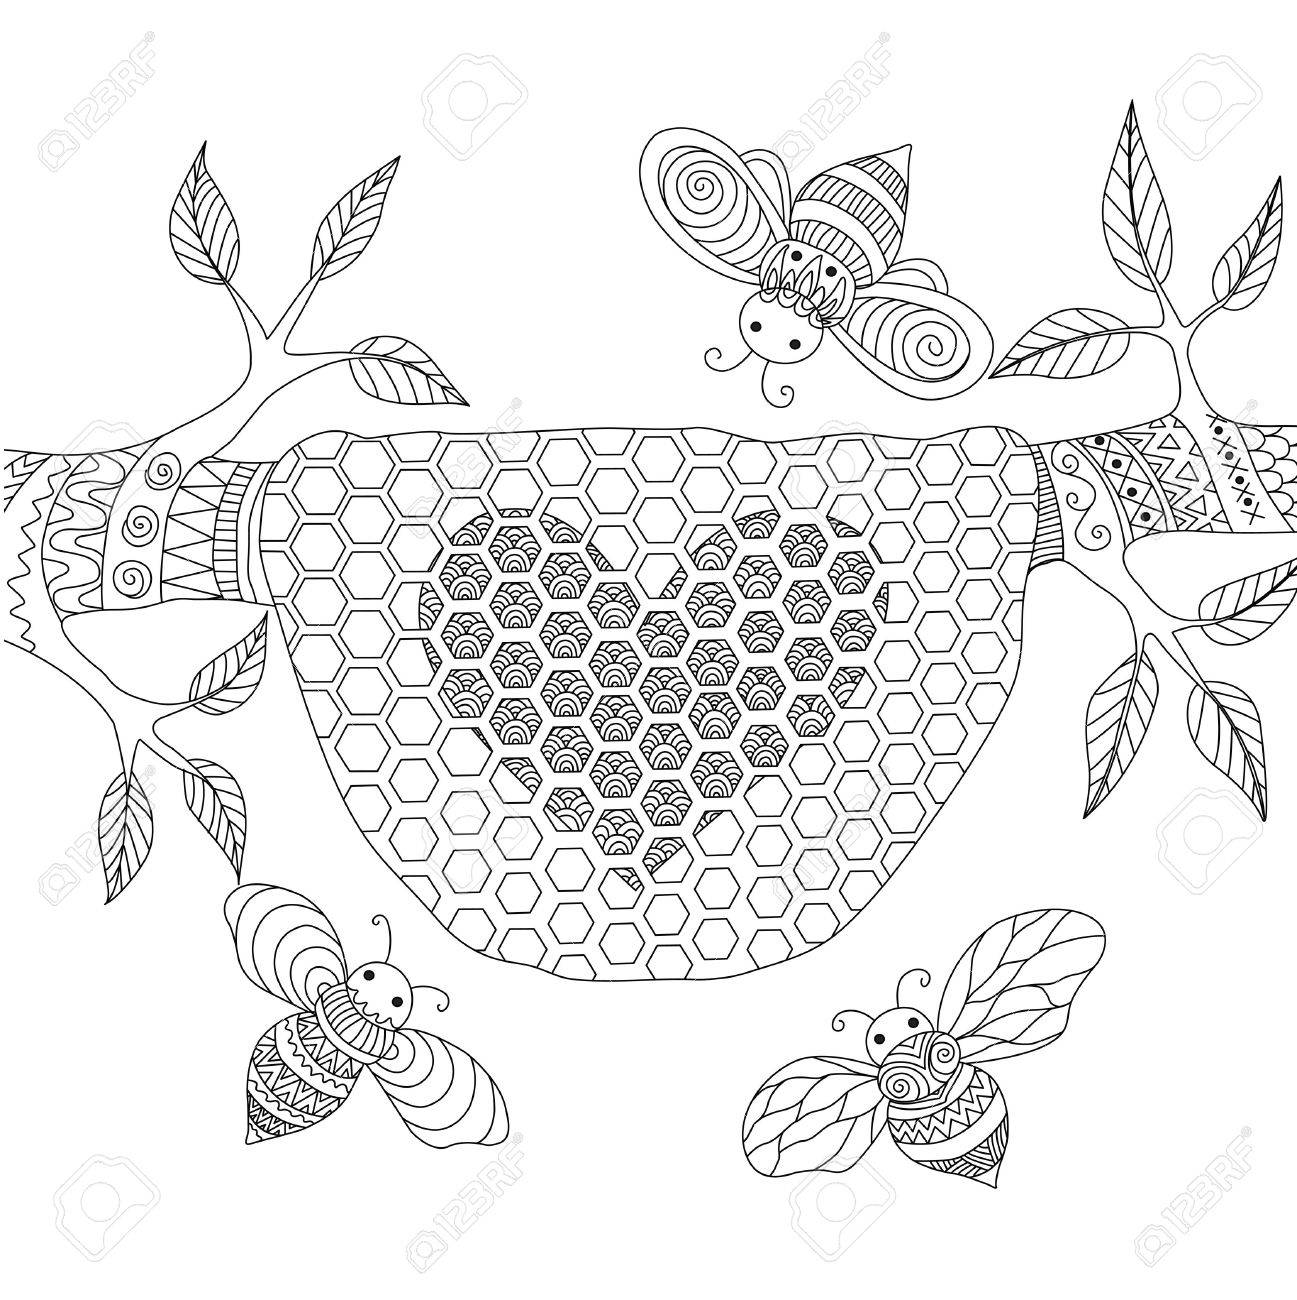 Line Art Design Of Honey Bees Flying Around Beehive For Coloring Royalty Free Cliparts Vectors And Stock Illustration Image 57525316